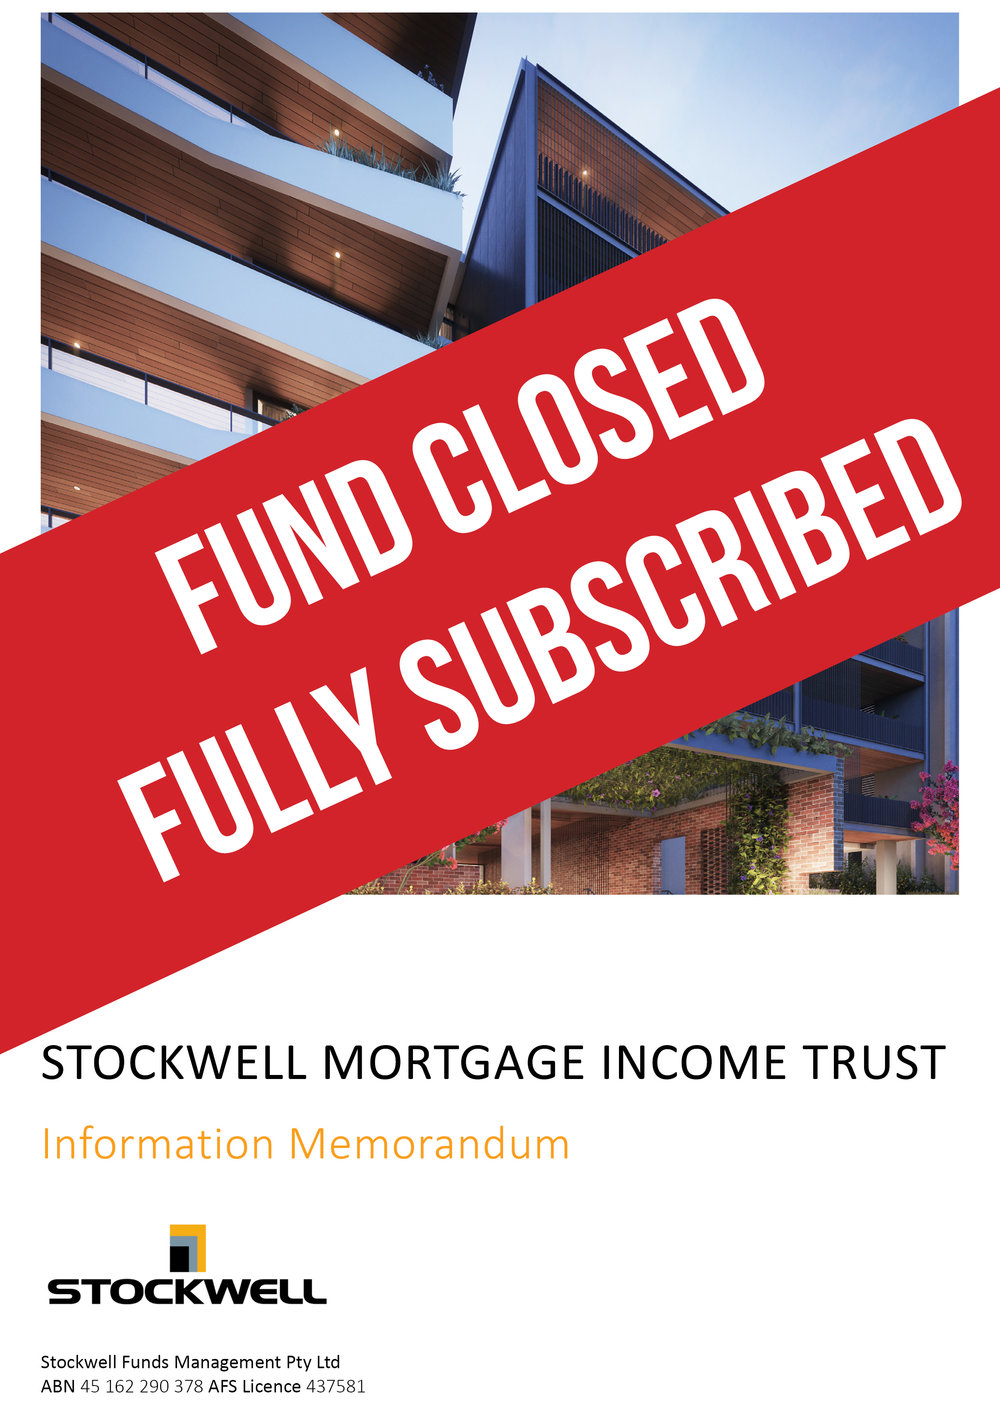 Stockwell mortgage income trust